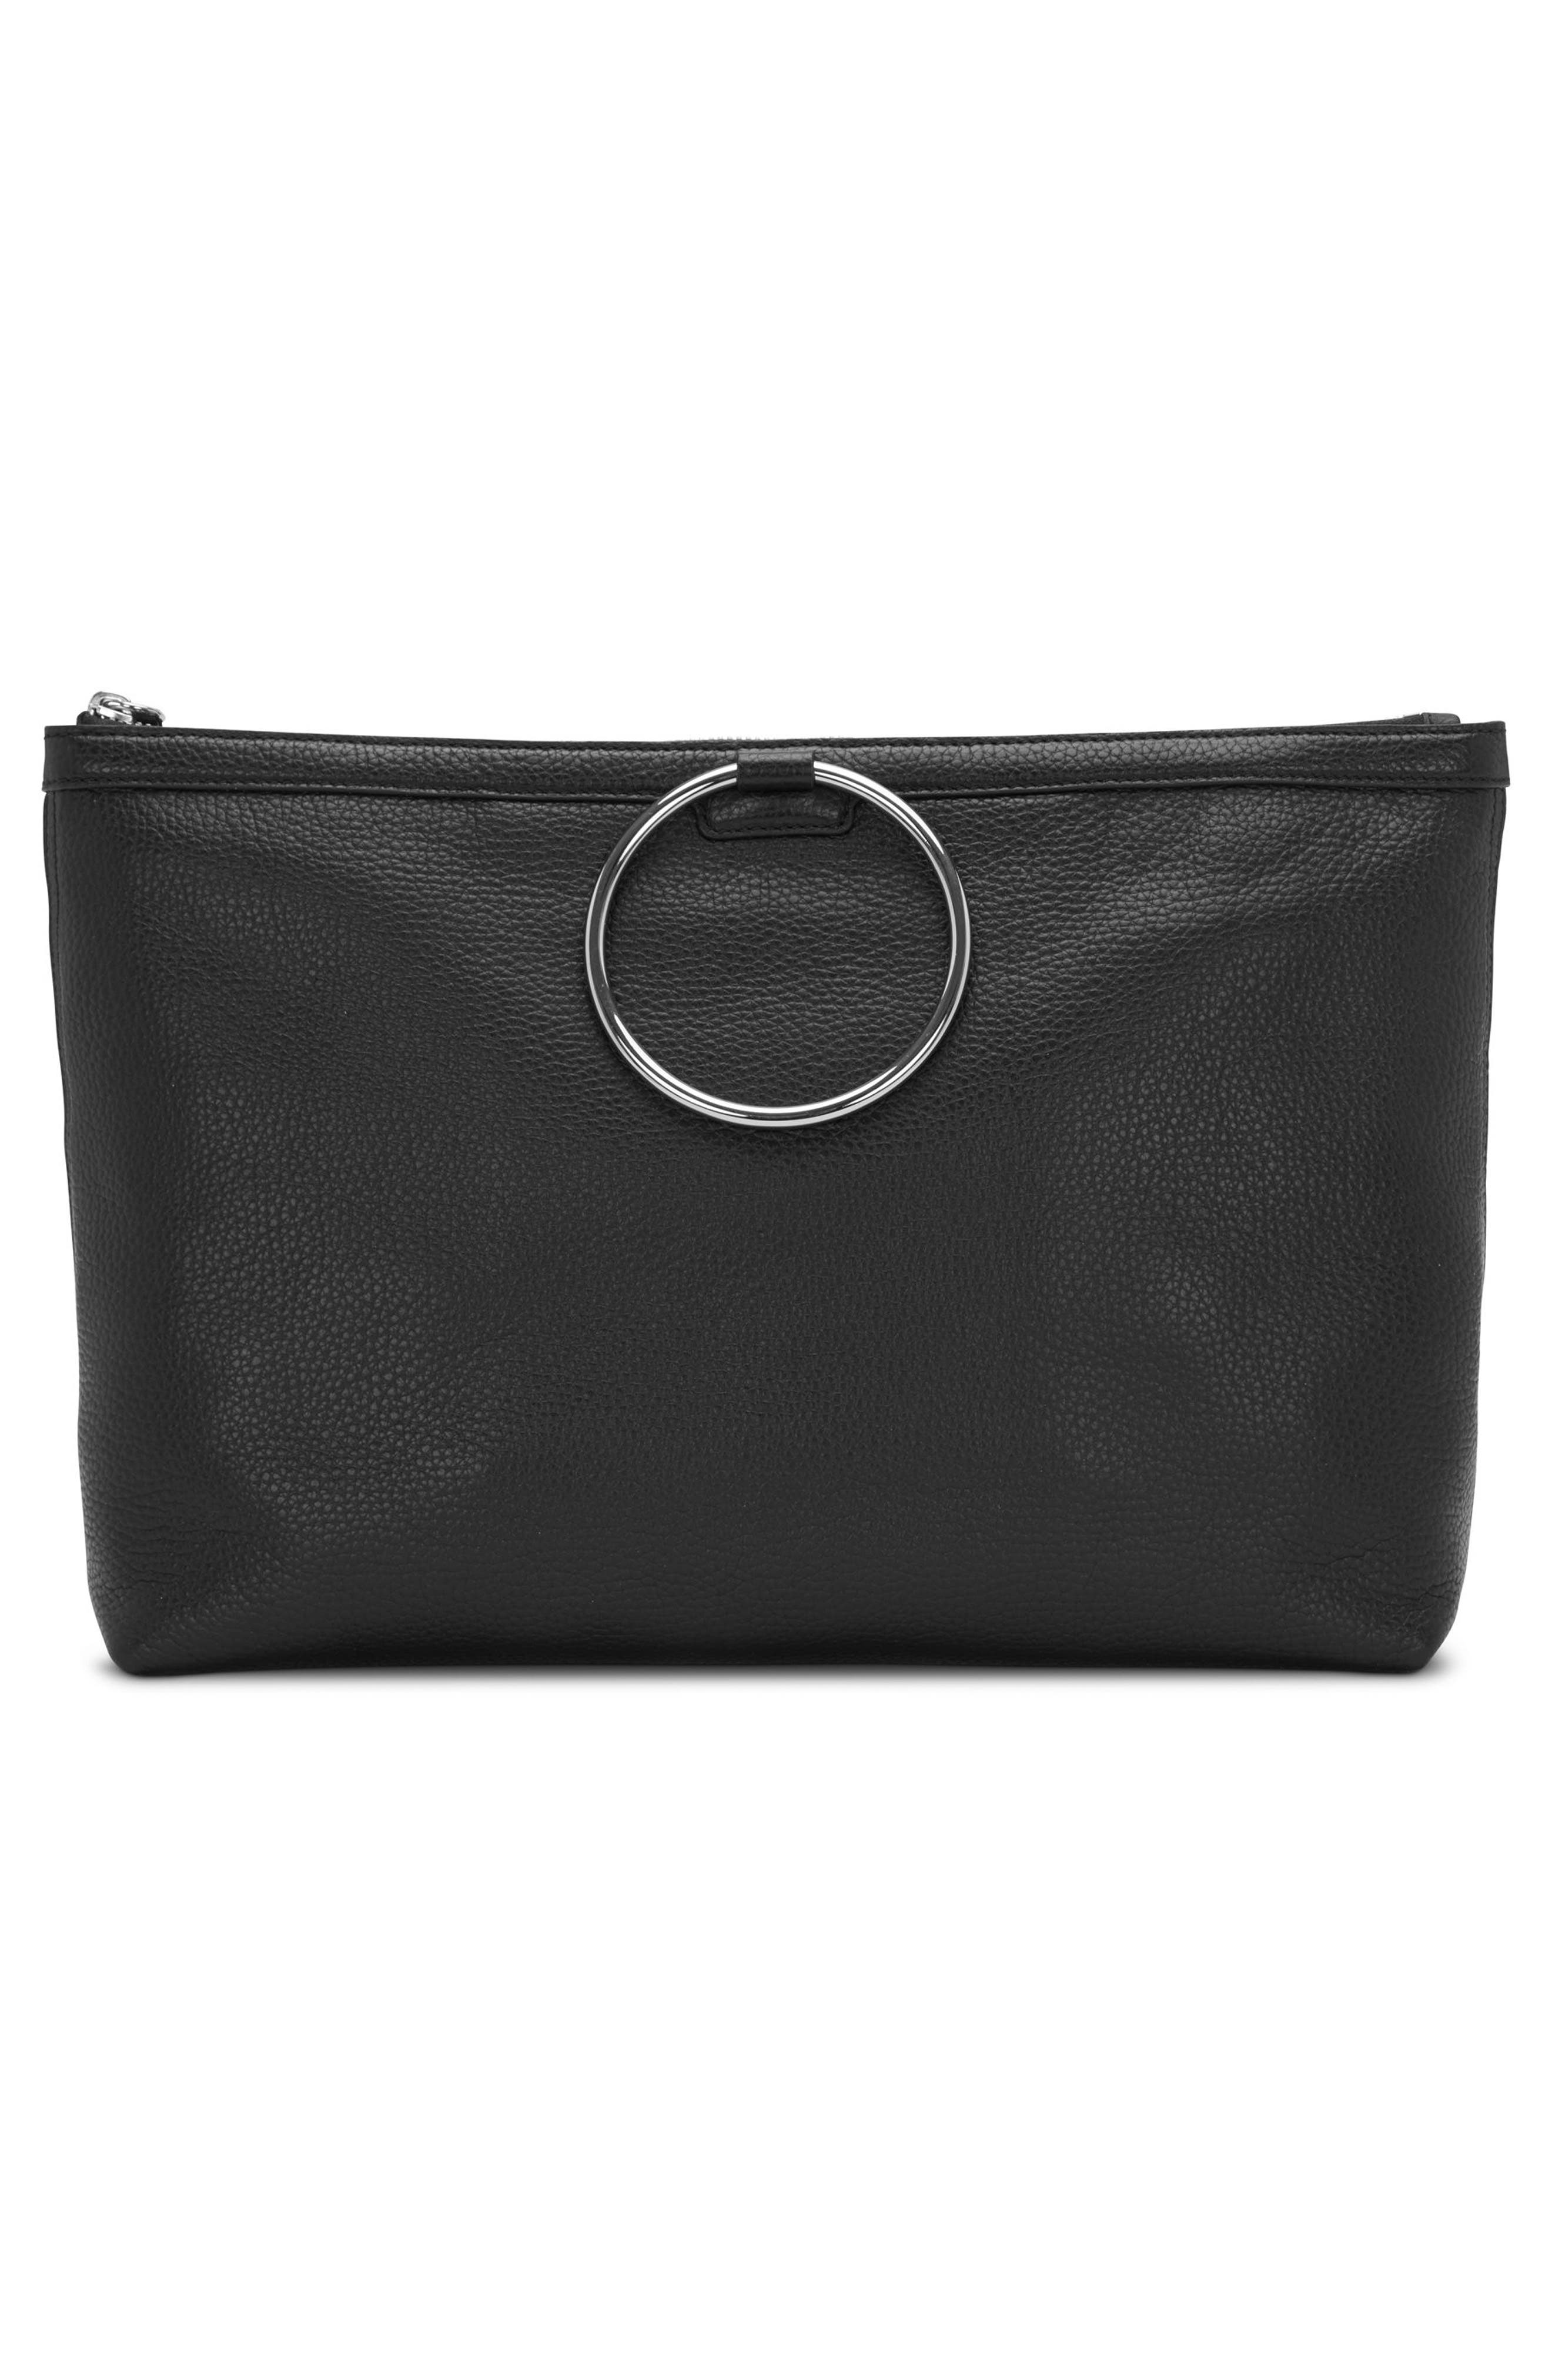 Large Pebbled Leather Ring Clutch,                             Alternate thumbnail 8, color,                             001